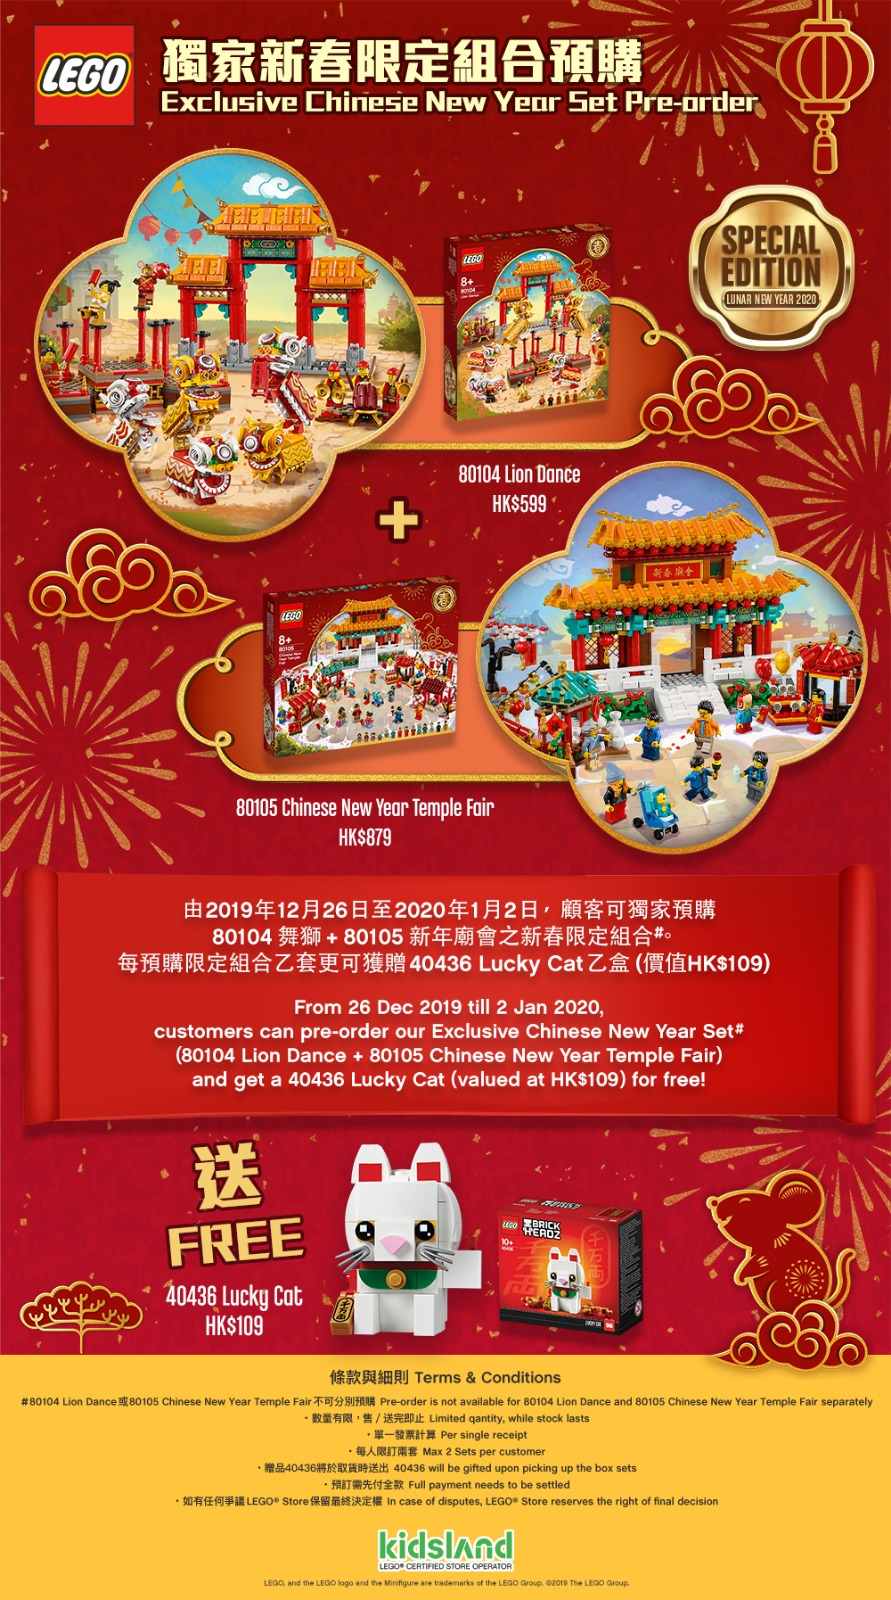 LEGO Certified Store Hong Kong Kidsland chinese New year promotion